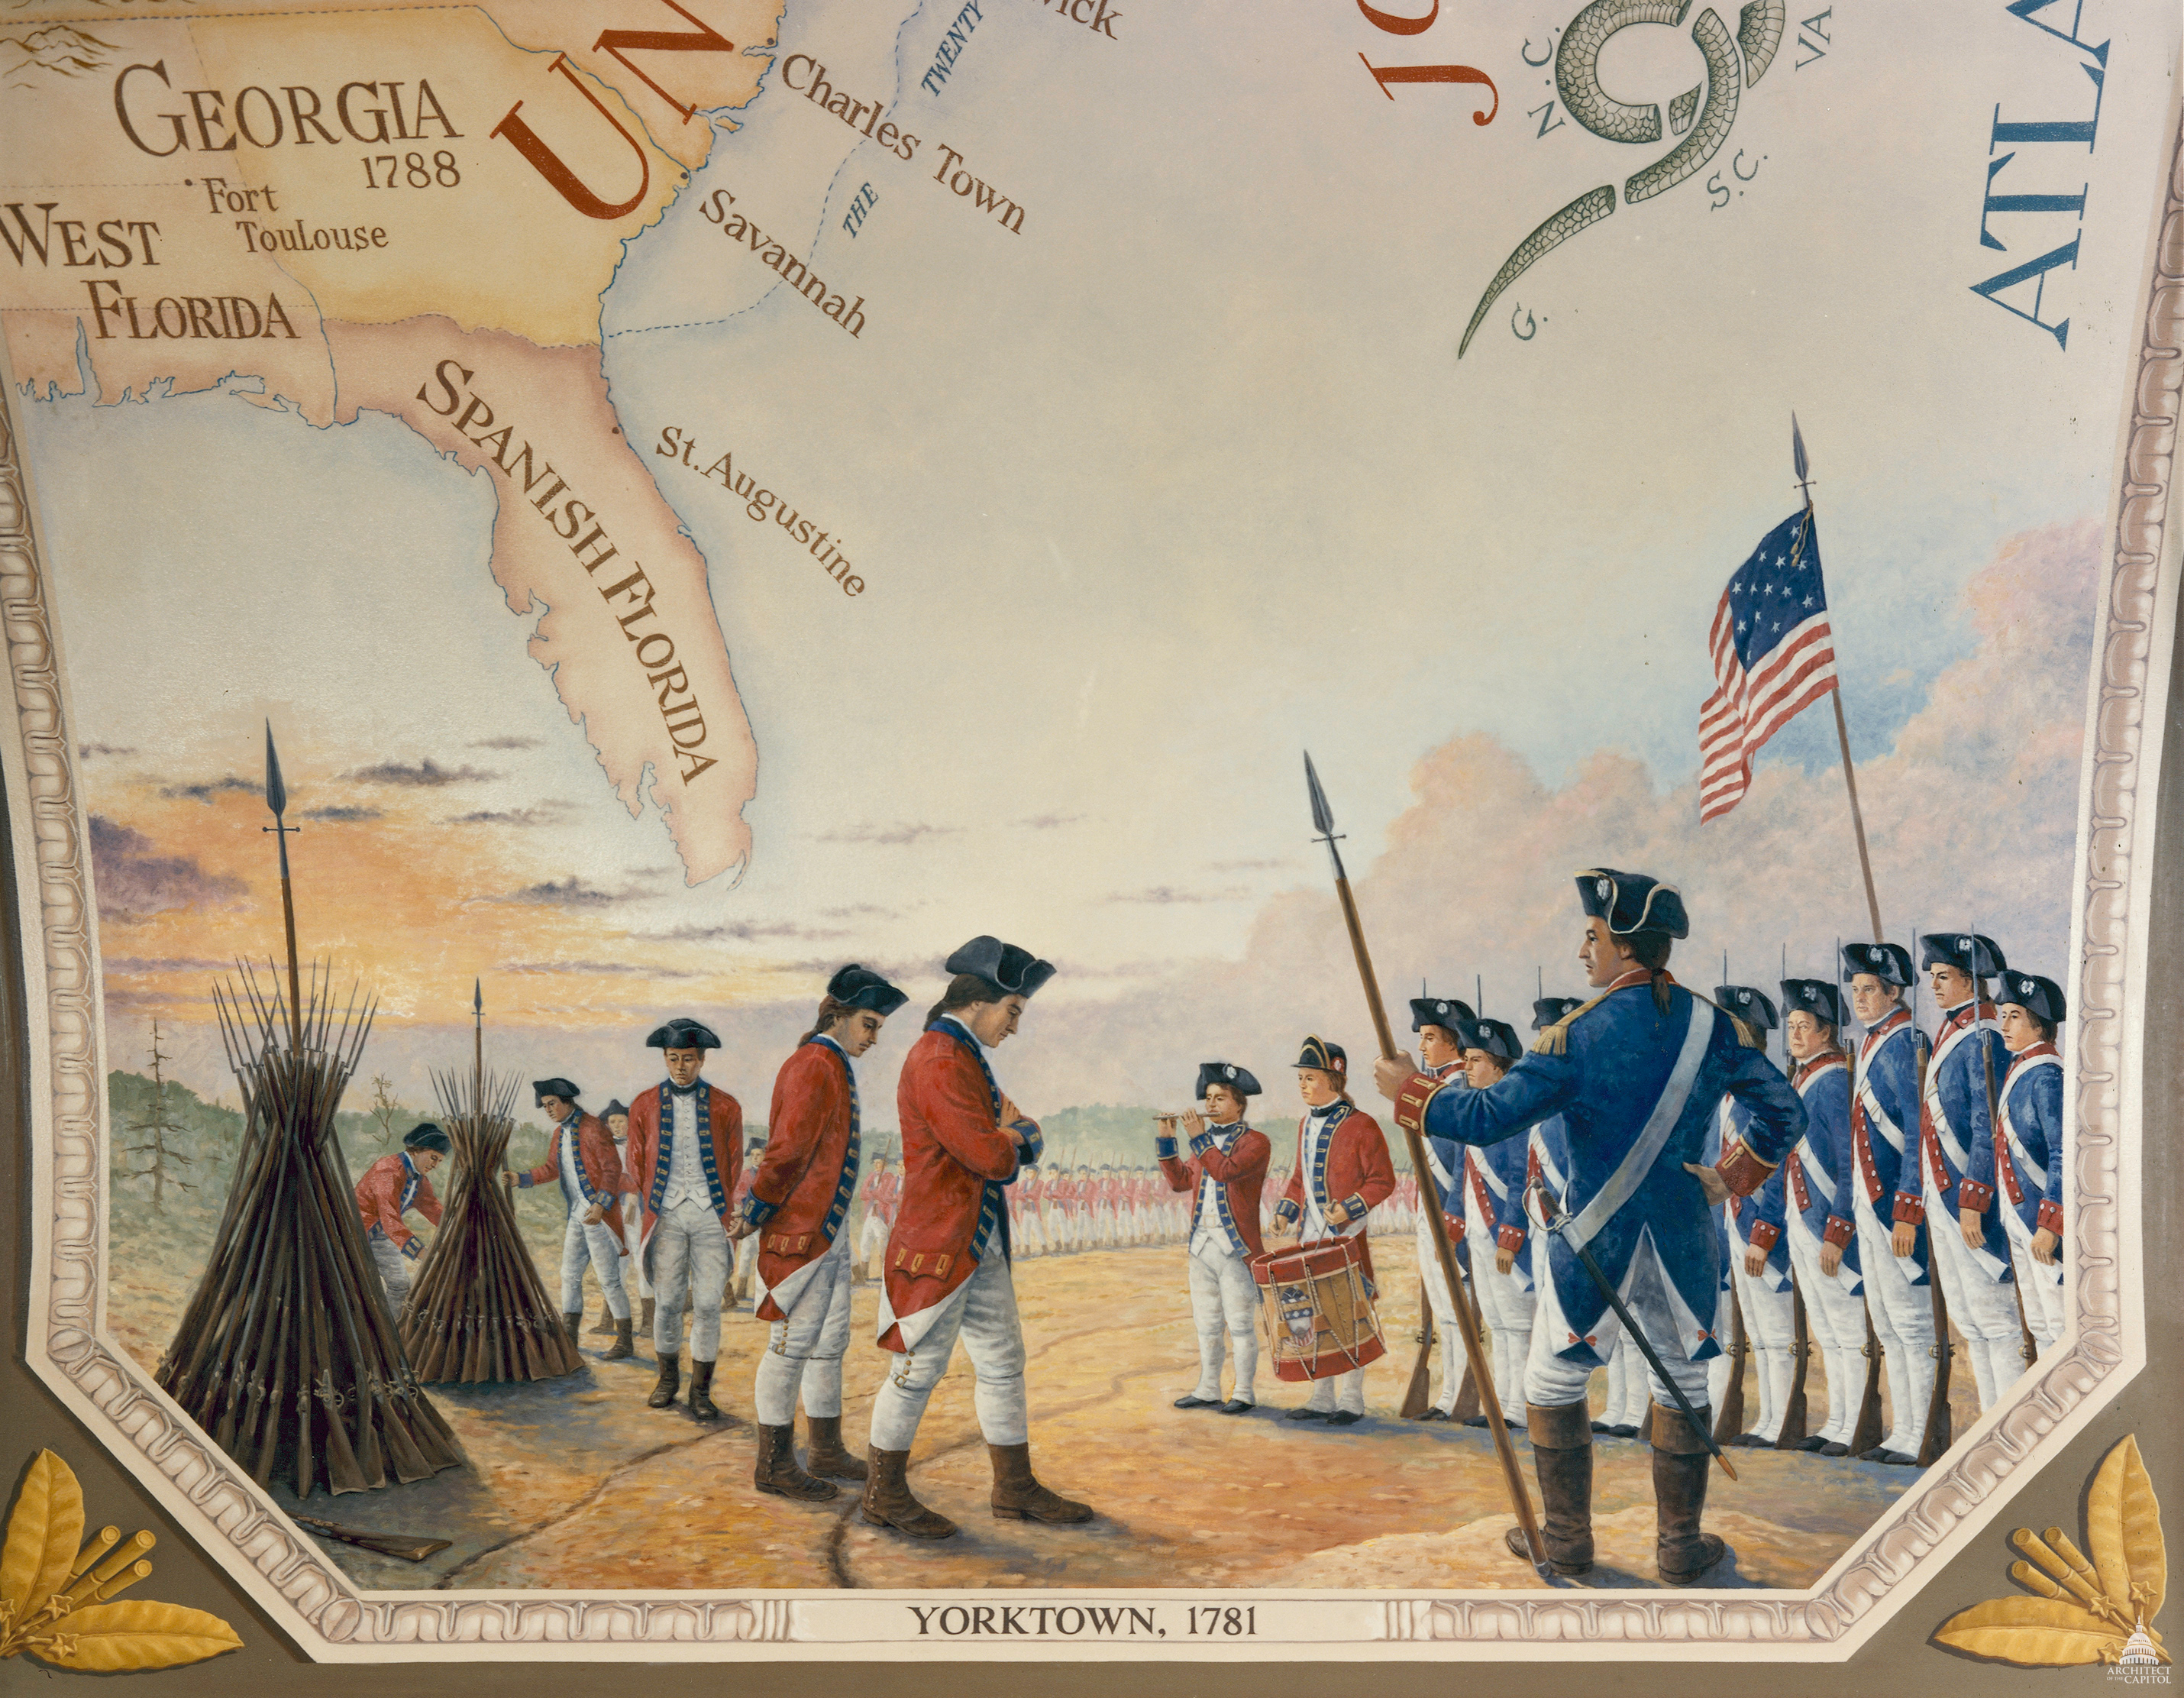 main events of the battle of yorktown the last major battle of the american revolution Battle summary  during the yorktown campaign, the siege proved to be the last  major land battle of the revolutionary war in the north american theater, as the  surrender by cornwallis, and the capture of both him and his army, prompted the   washington made a visit to his home, mount vernon, on his way to yorktown.